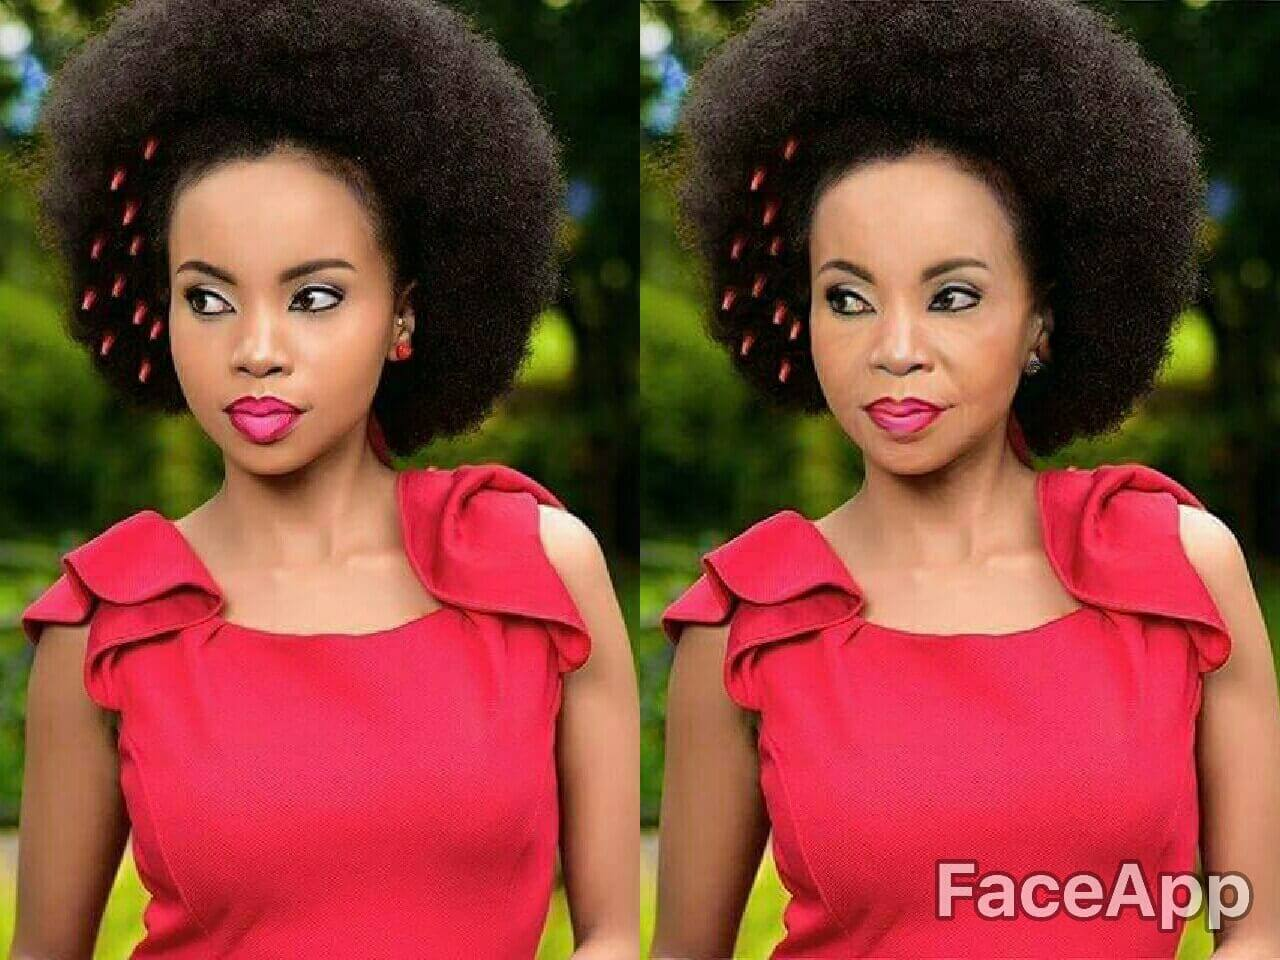 WhatsApp Image 2017 10 29 at 19.37.48 4 1 1 - When beauty fades! Photos Of Kenyan Celebrities 20 Years From Now!